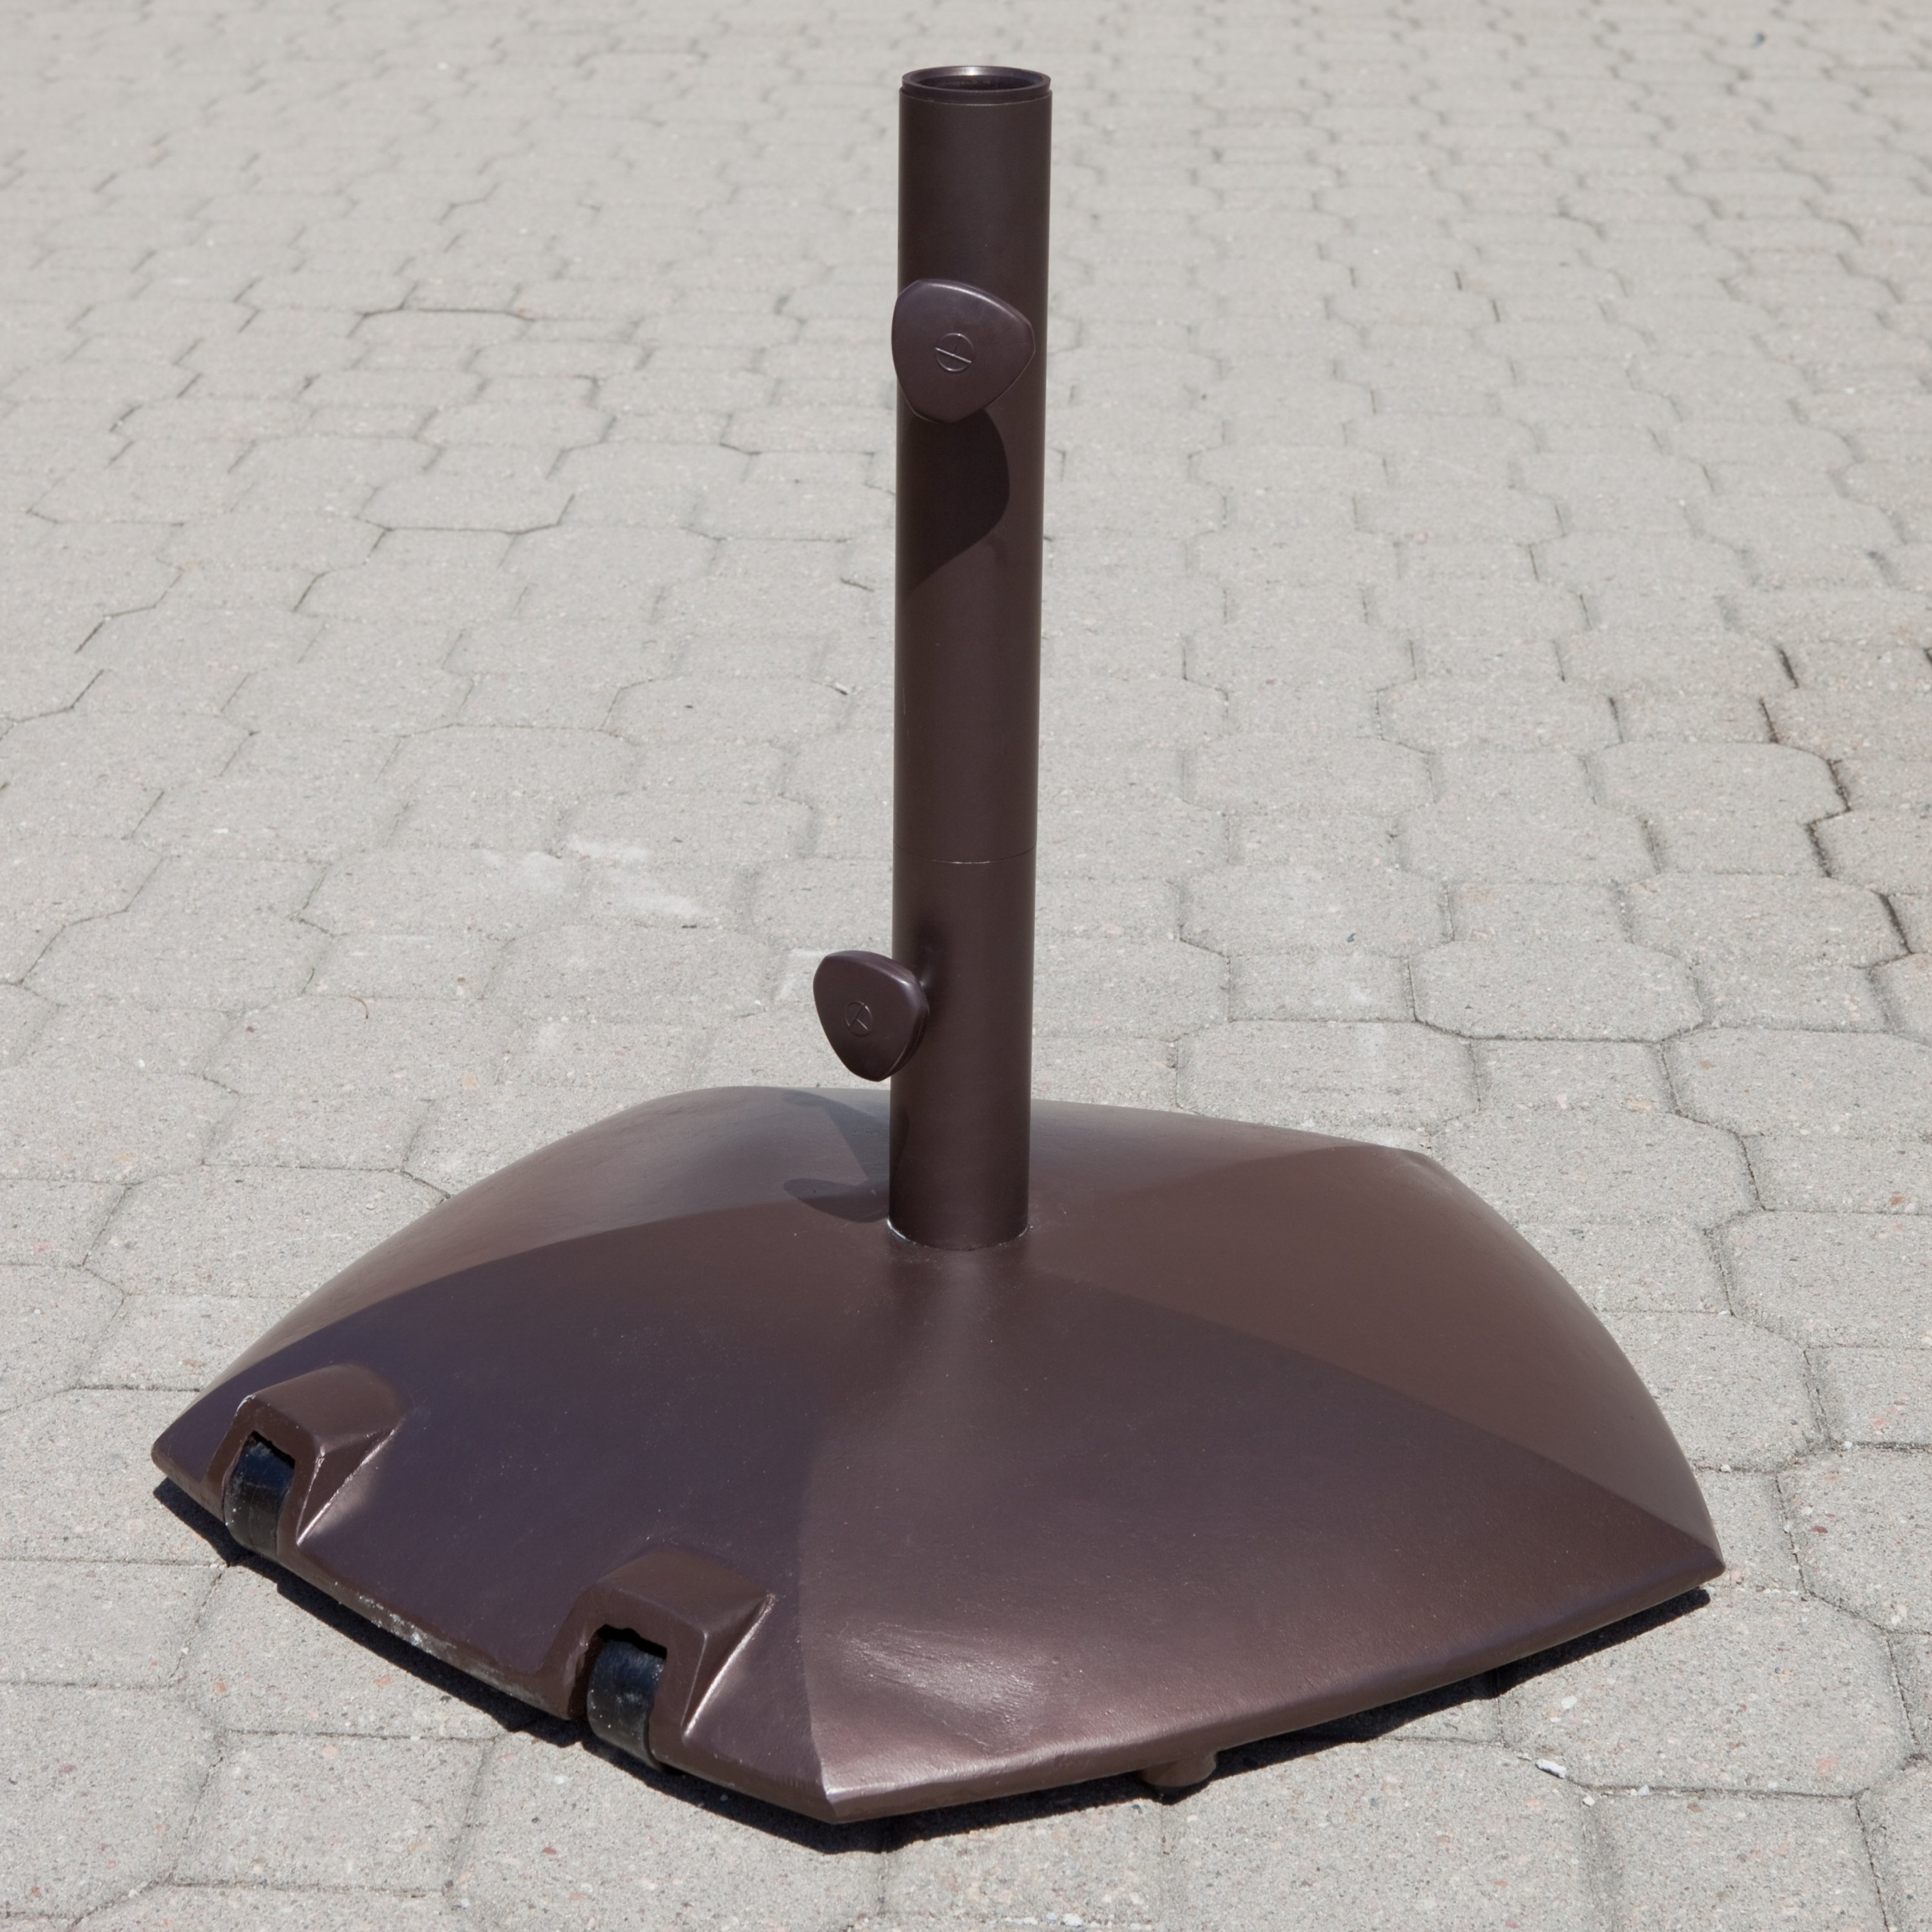 Coolest Patio Umbrella Stands With Wheels F11x On Creative Home Inside Widely Used Patio Umbrella Stands With Wheels (View 8 of 20)